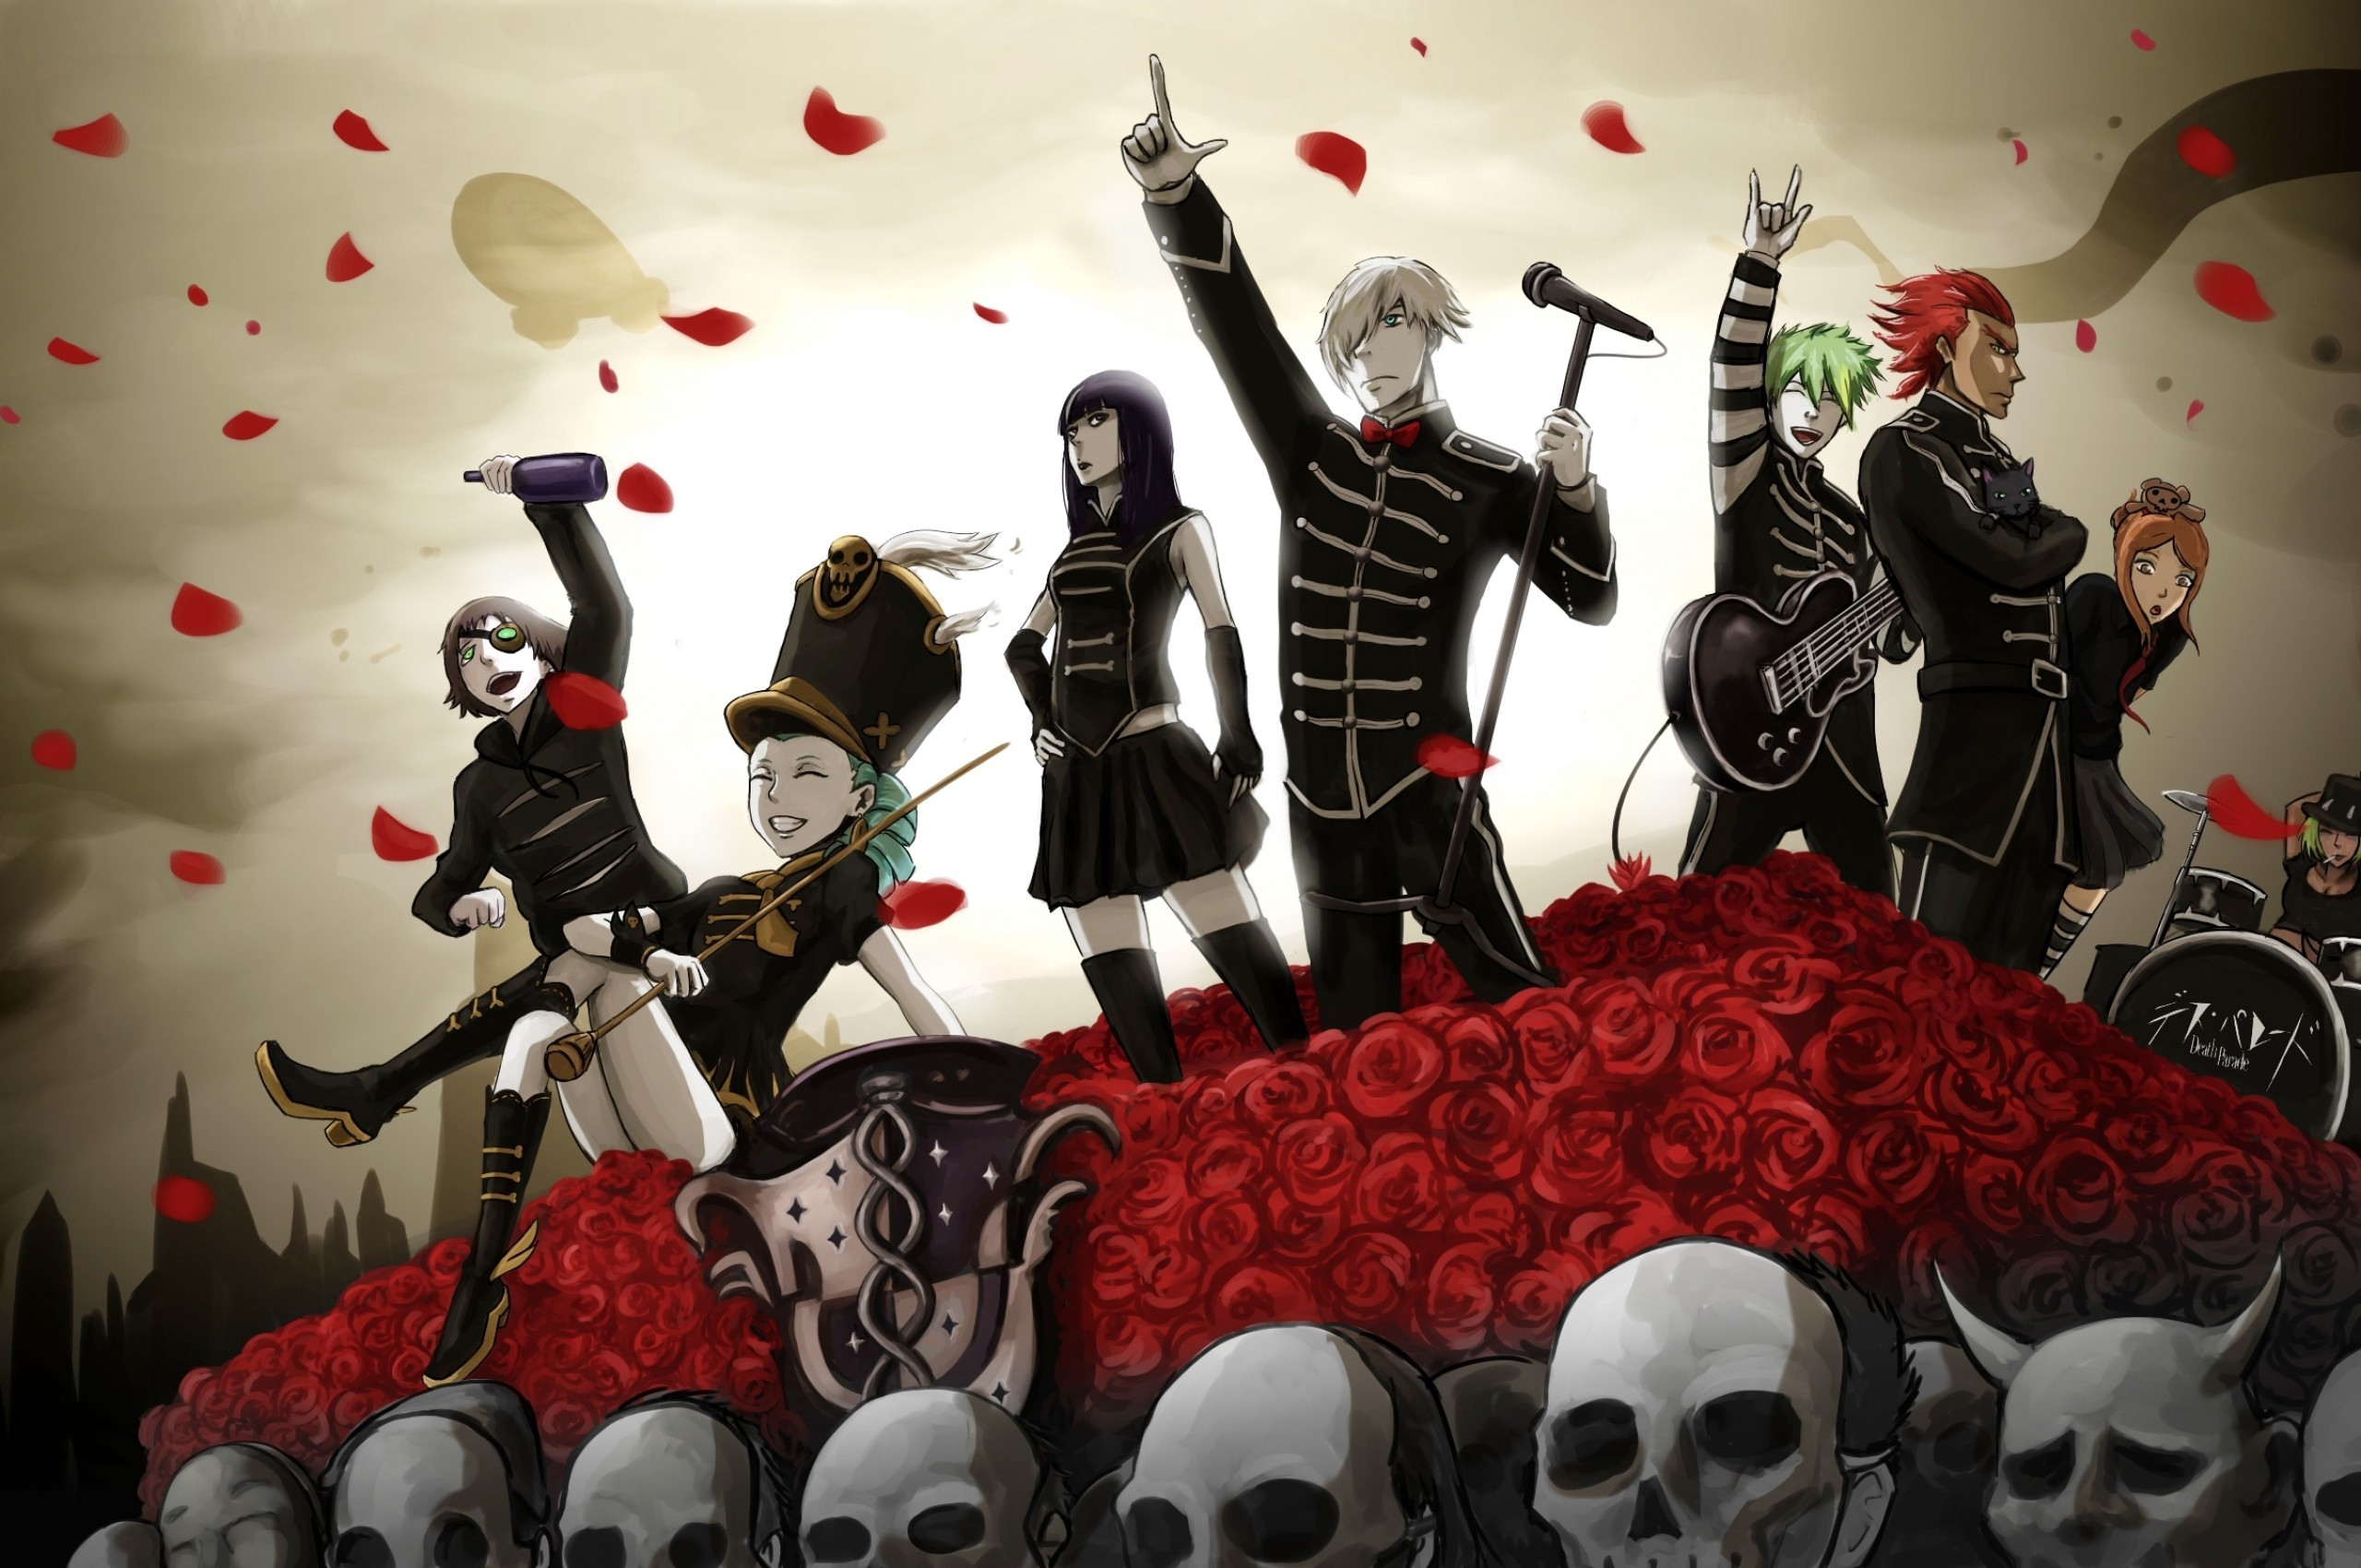 Anime Crossover, Kill La Kill, Death Parade, Decim, My Chemical Romance